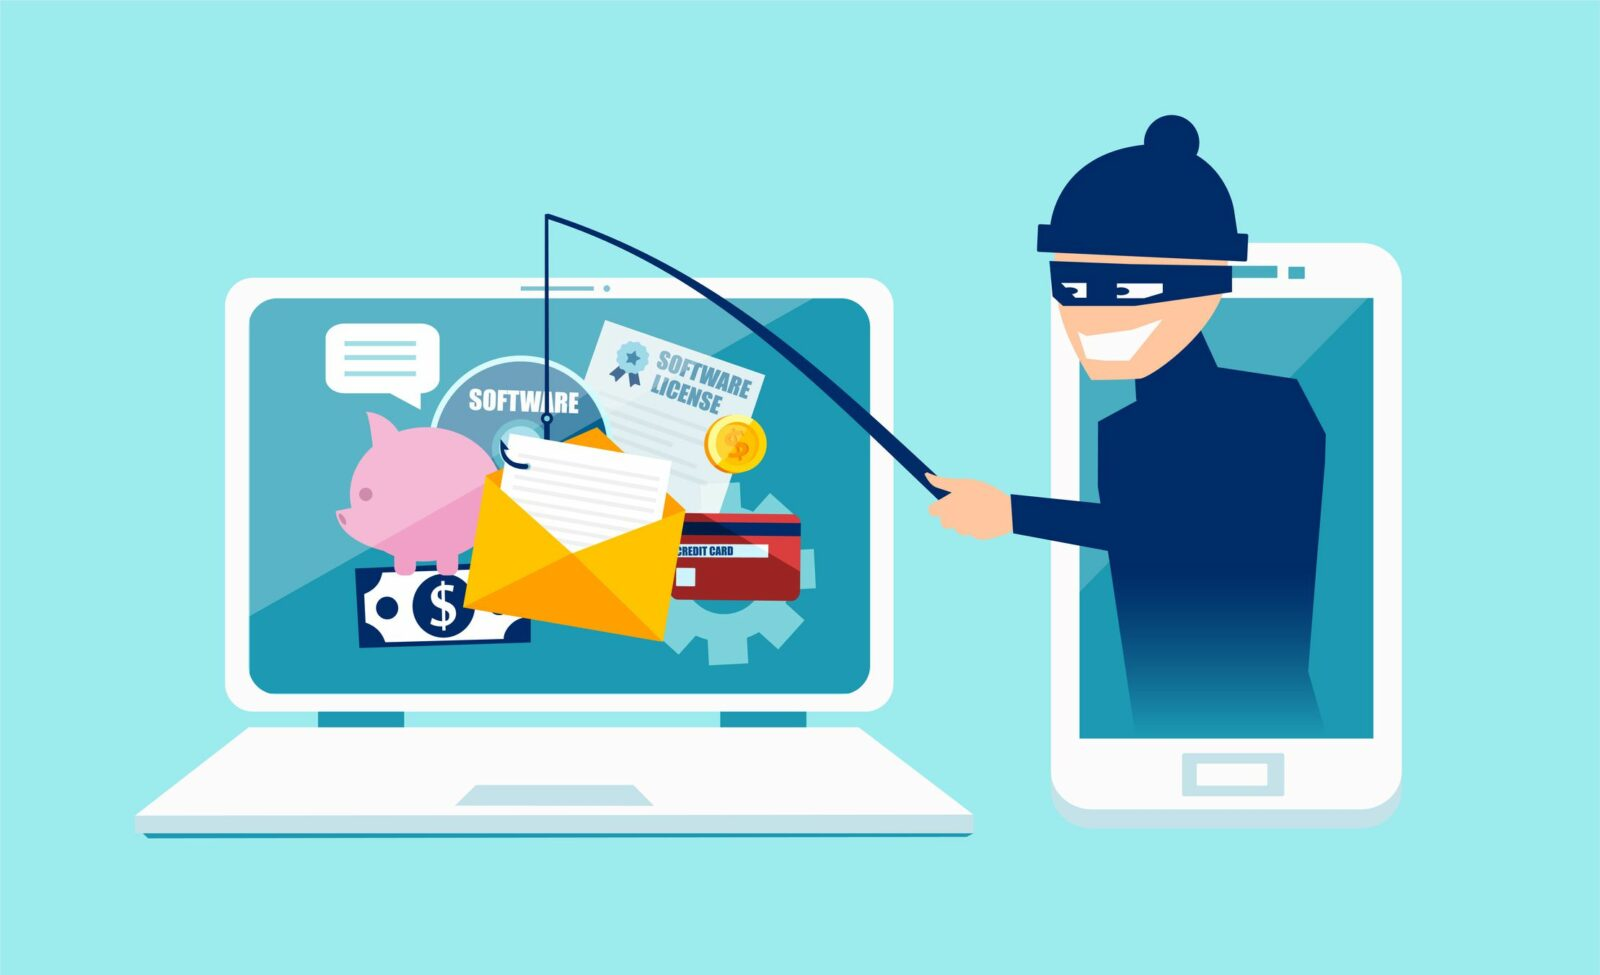 Your online security - Why should you care? Image showing scammer stealing data